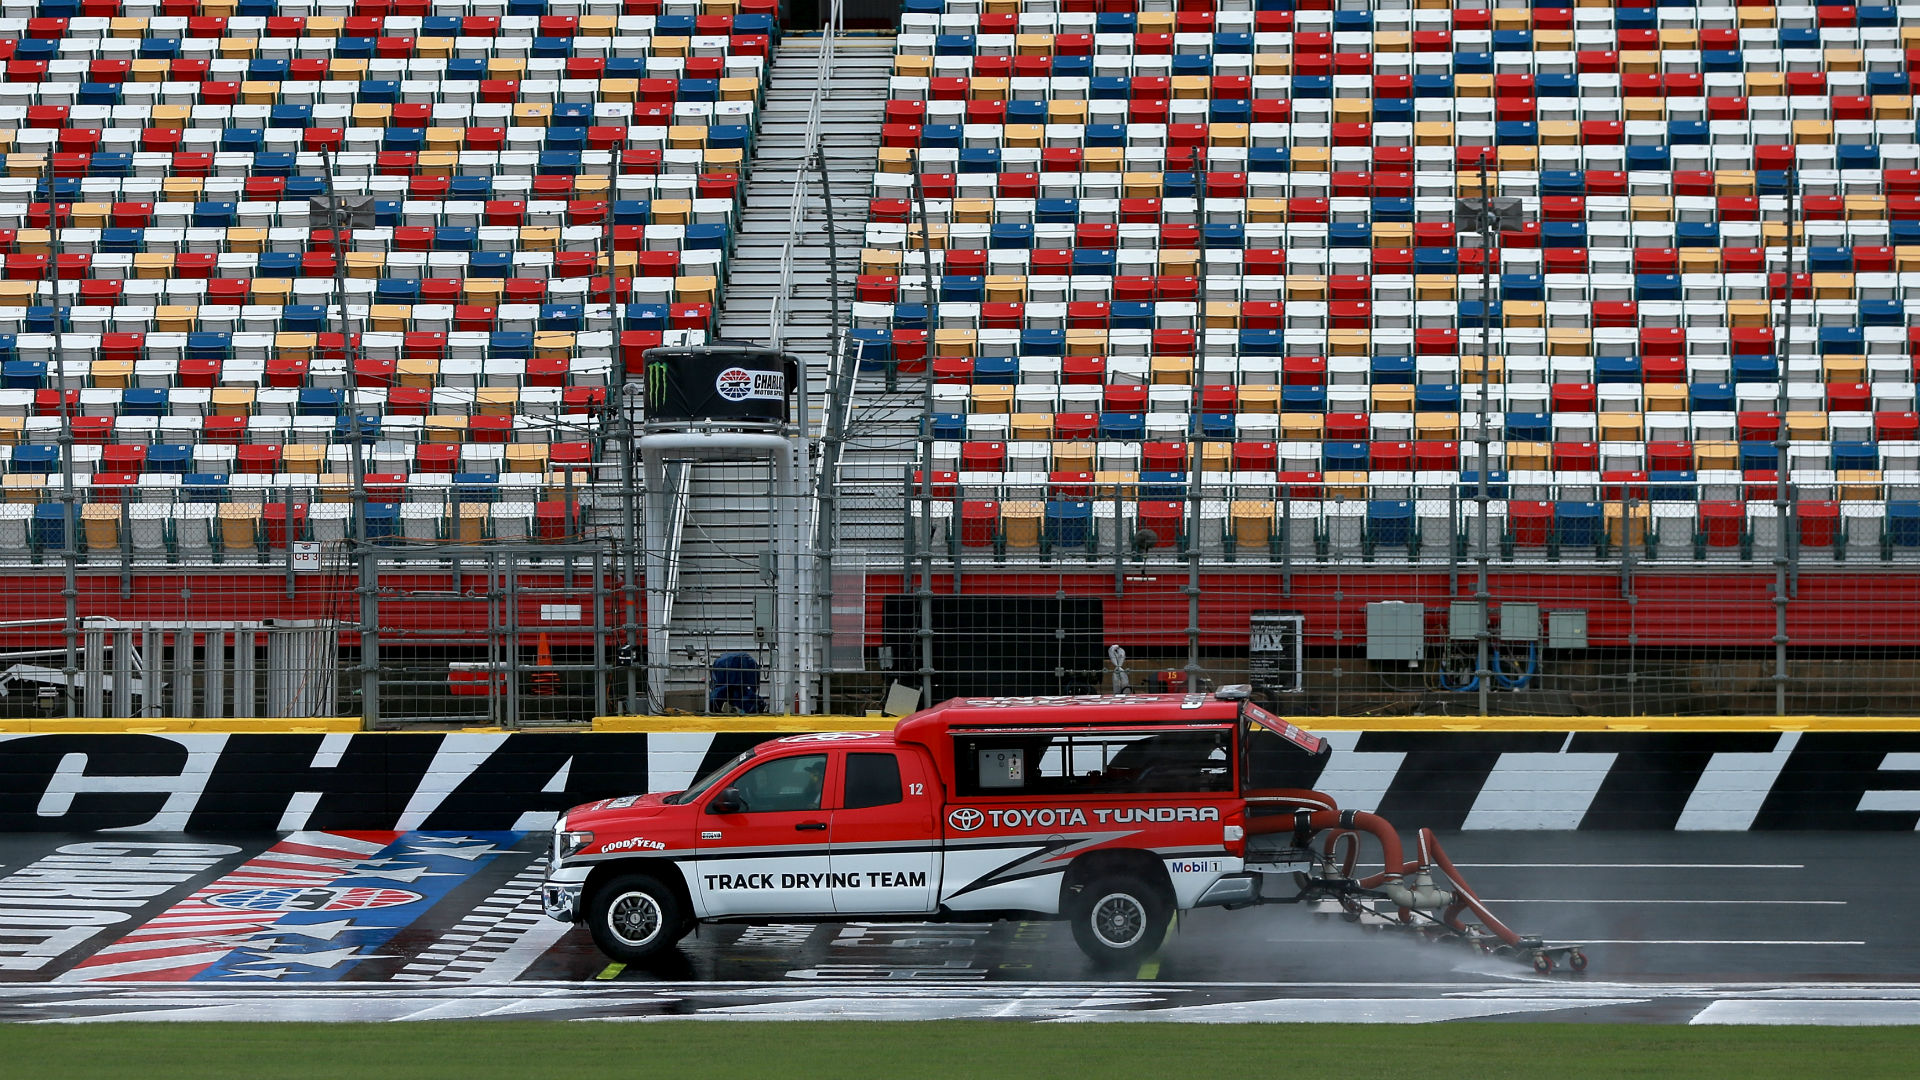 NASCAR race weather: Will rain in Charlotte forecast delay Wednesday's Cup race?